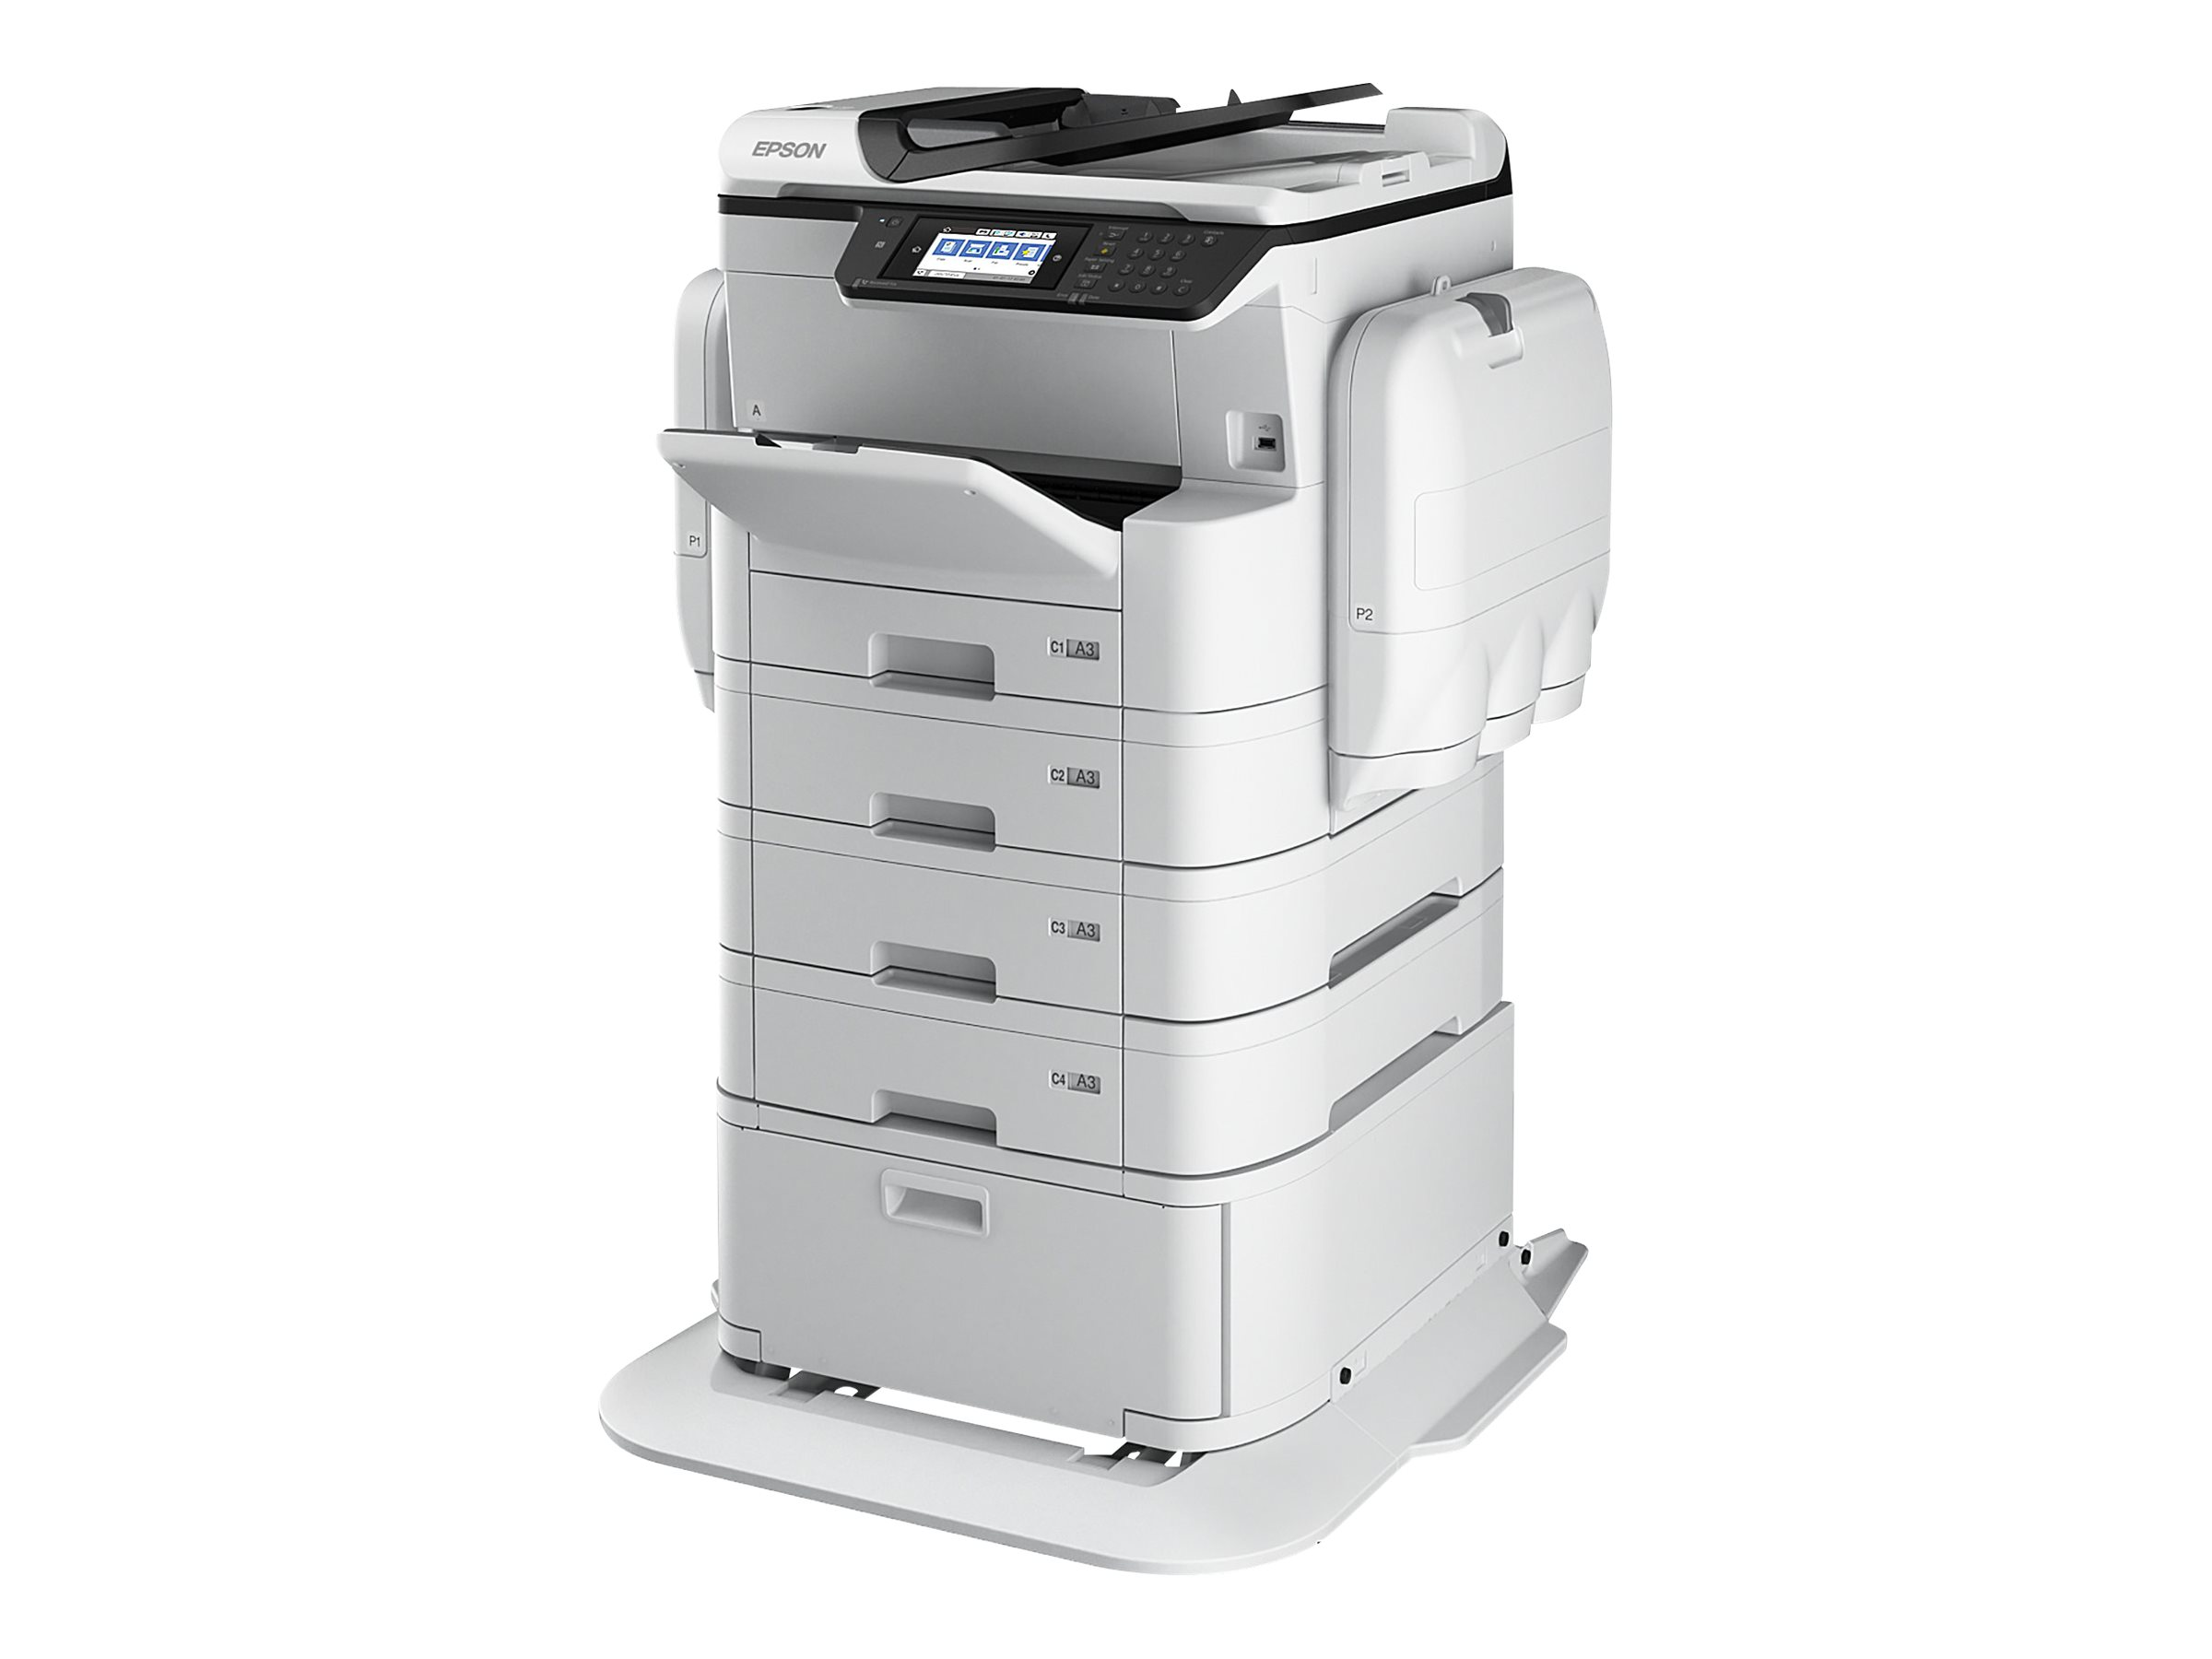 Epson WorkForce Pro WF-C869RD3TWFC EPP - Multifunktionsdrucker - Farbe - Tintenstrahl - A3 (297 x 420 mm)